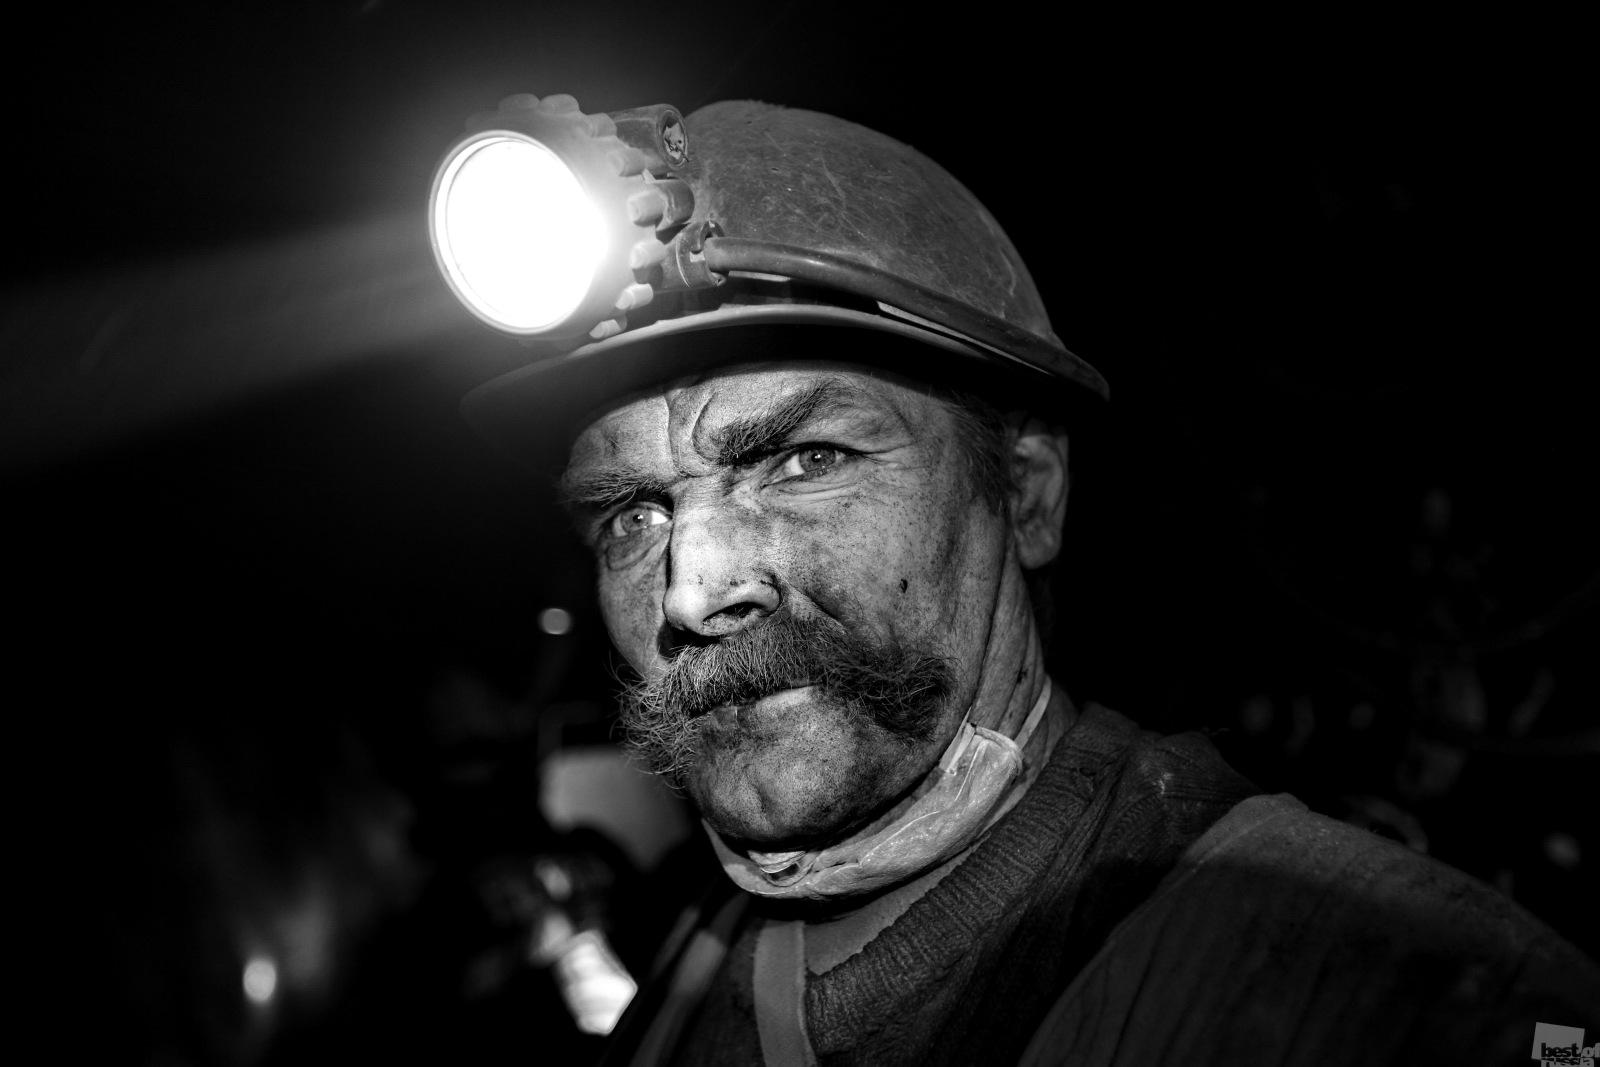 A third group are so engrossed in work that they don't see the light of day // A drift miner at the preliminary coal-face. Leninsk-Kuznetsk, Kemerovo region